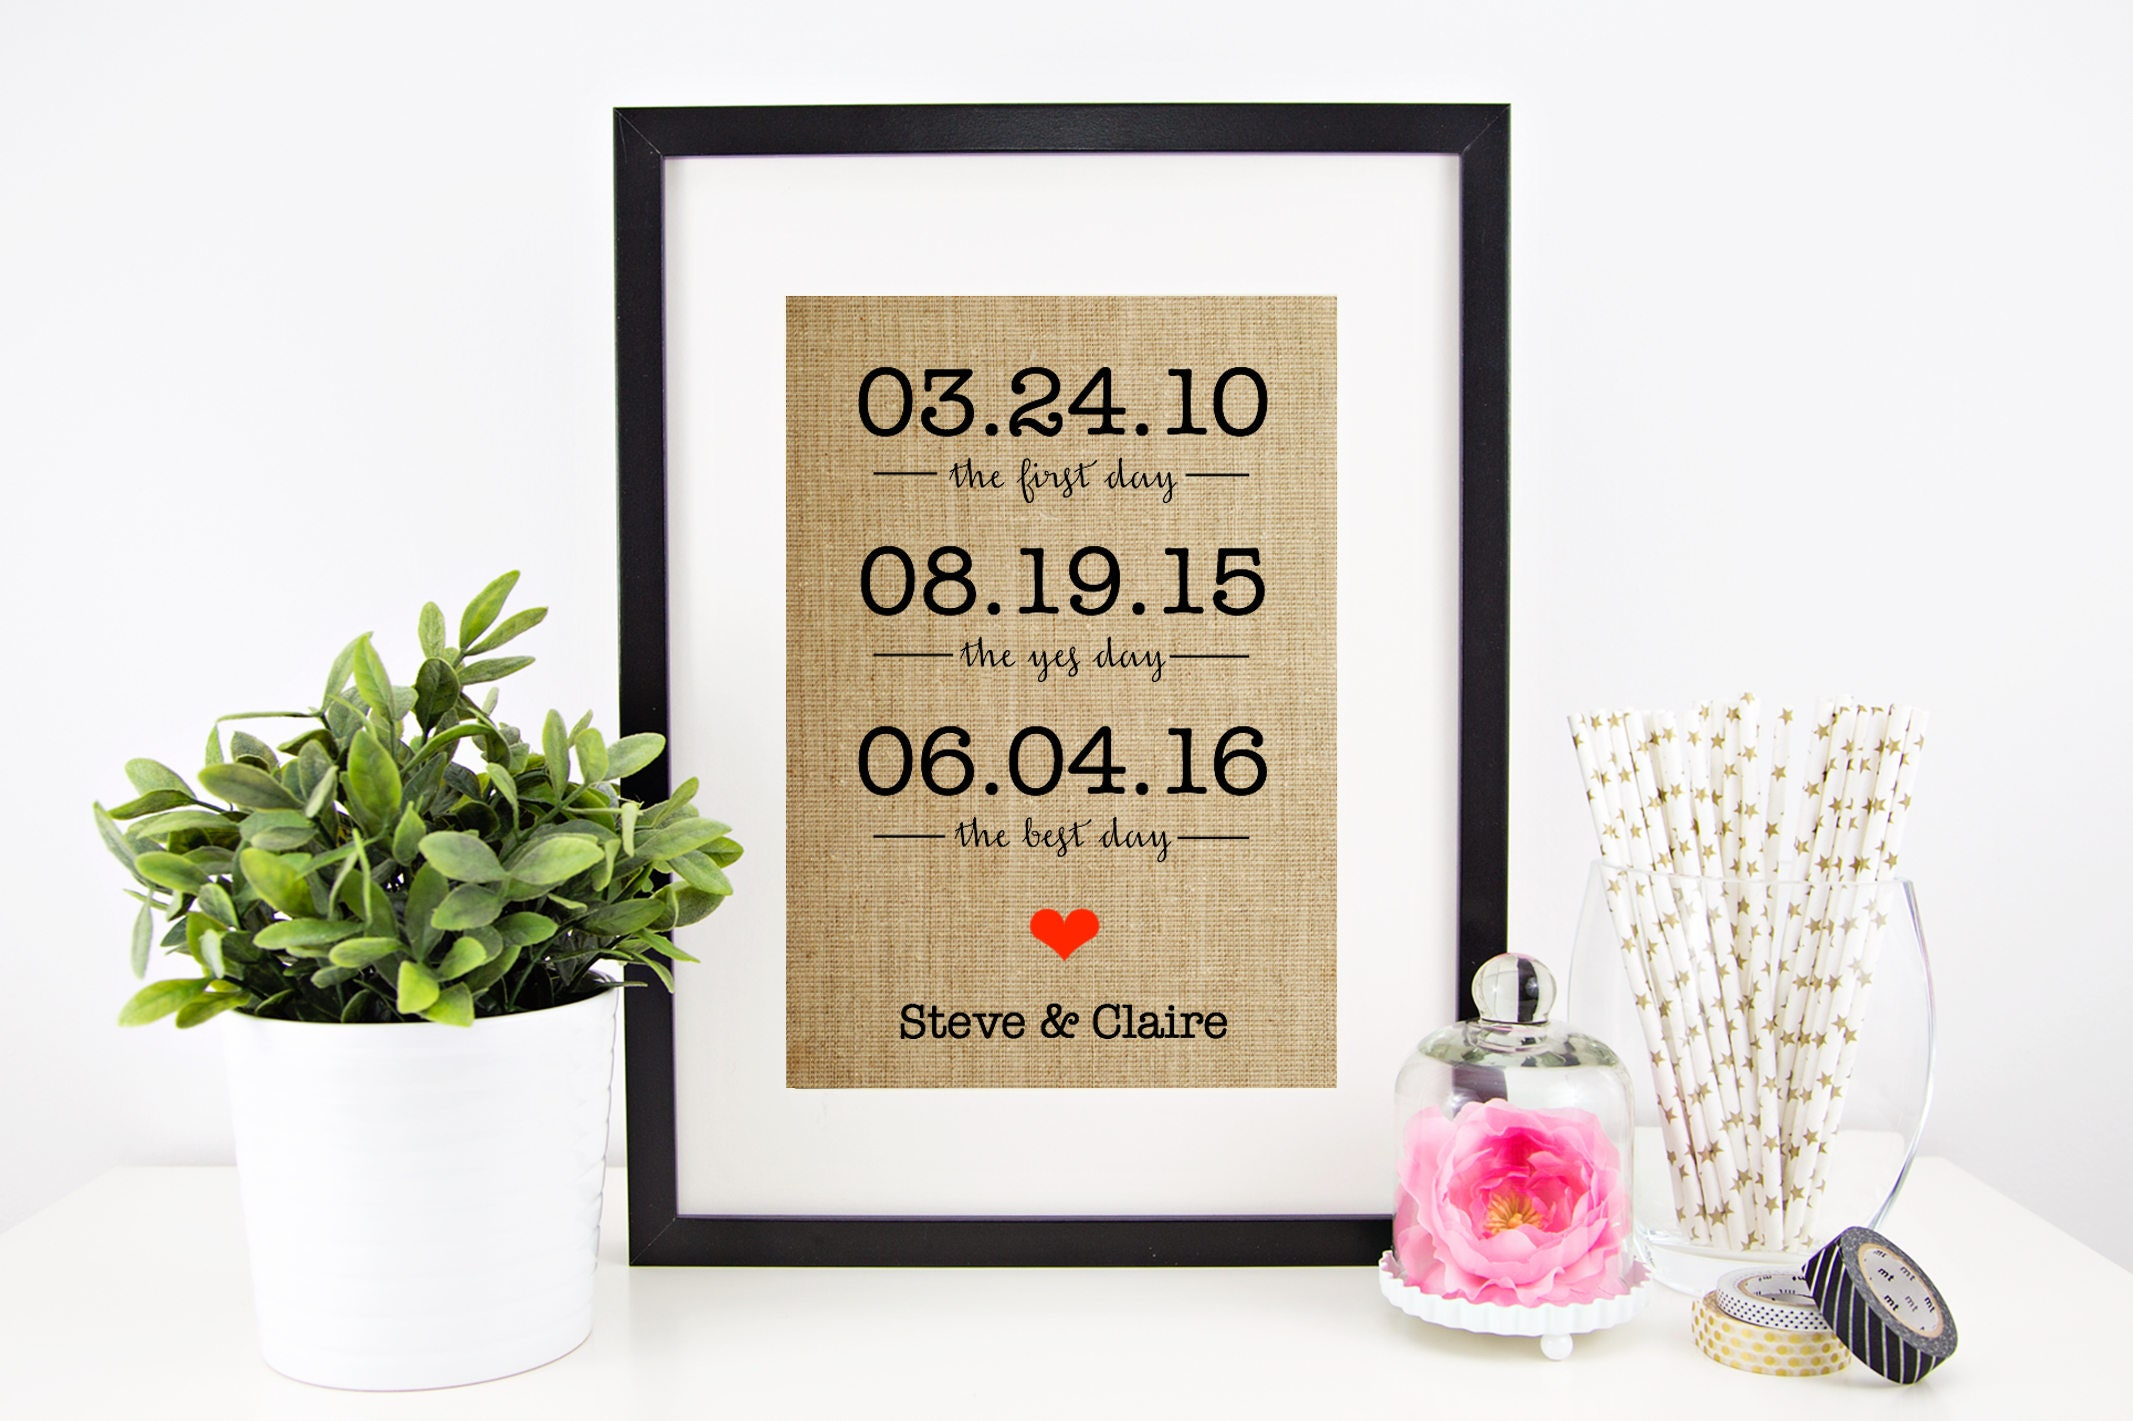 Unique Gifts Wedding: Wedding Gift Anniversary Gifts For Men Personalized Wedding